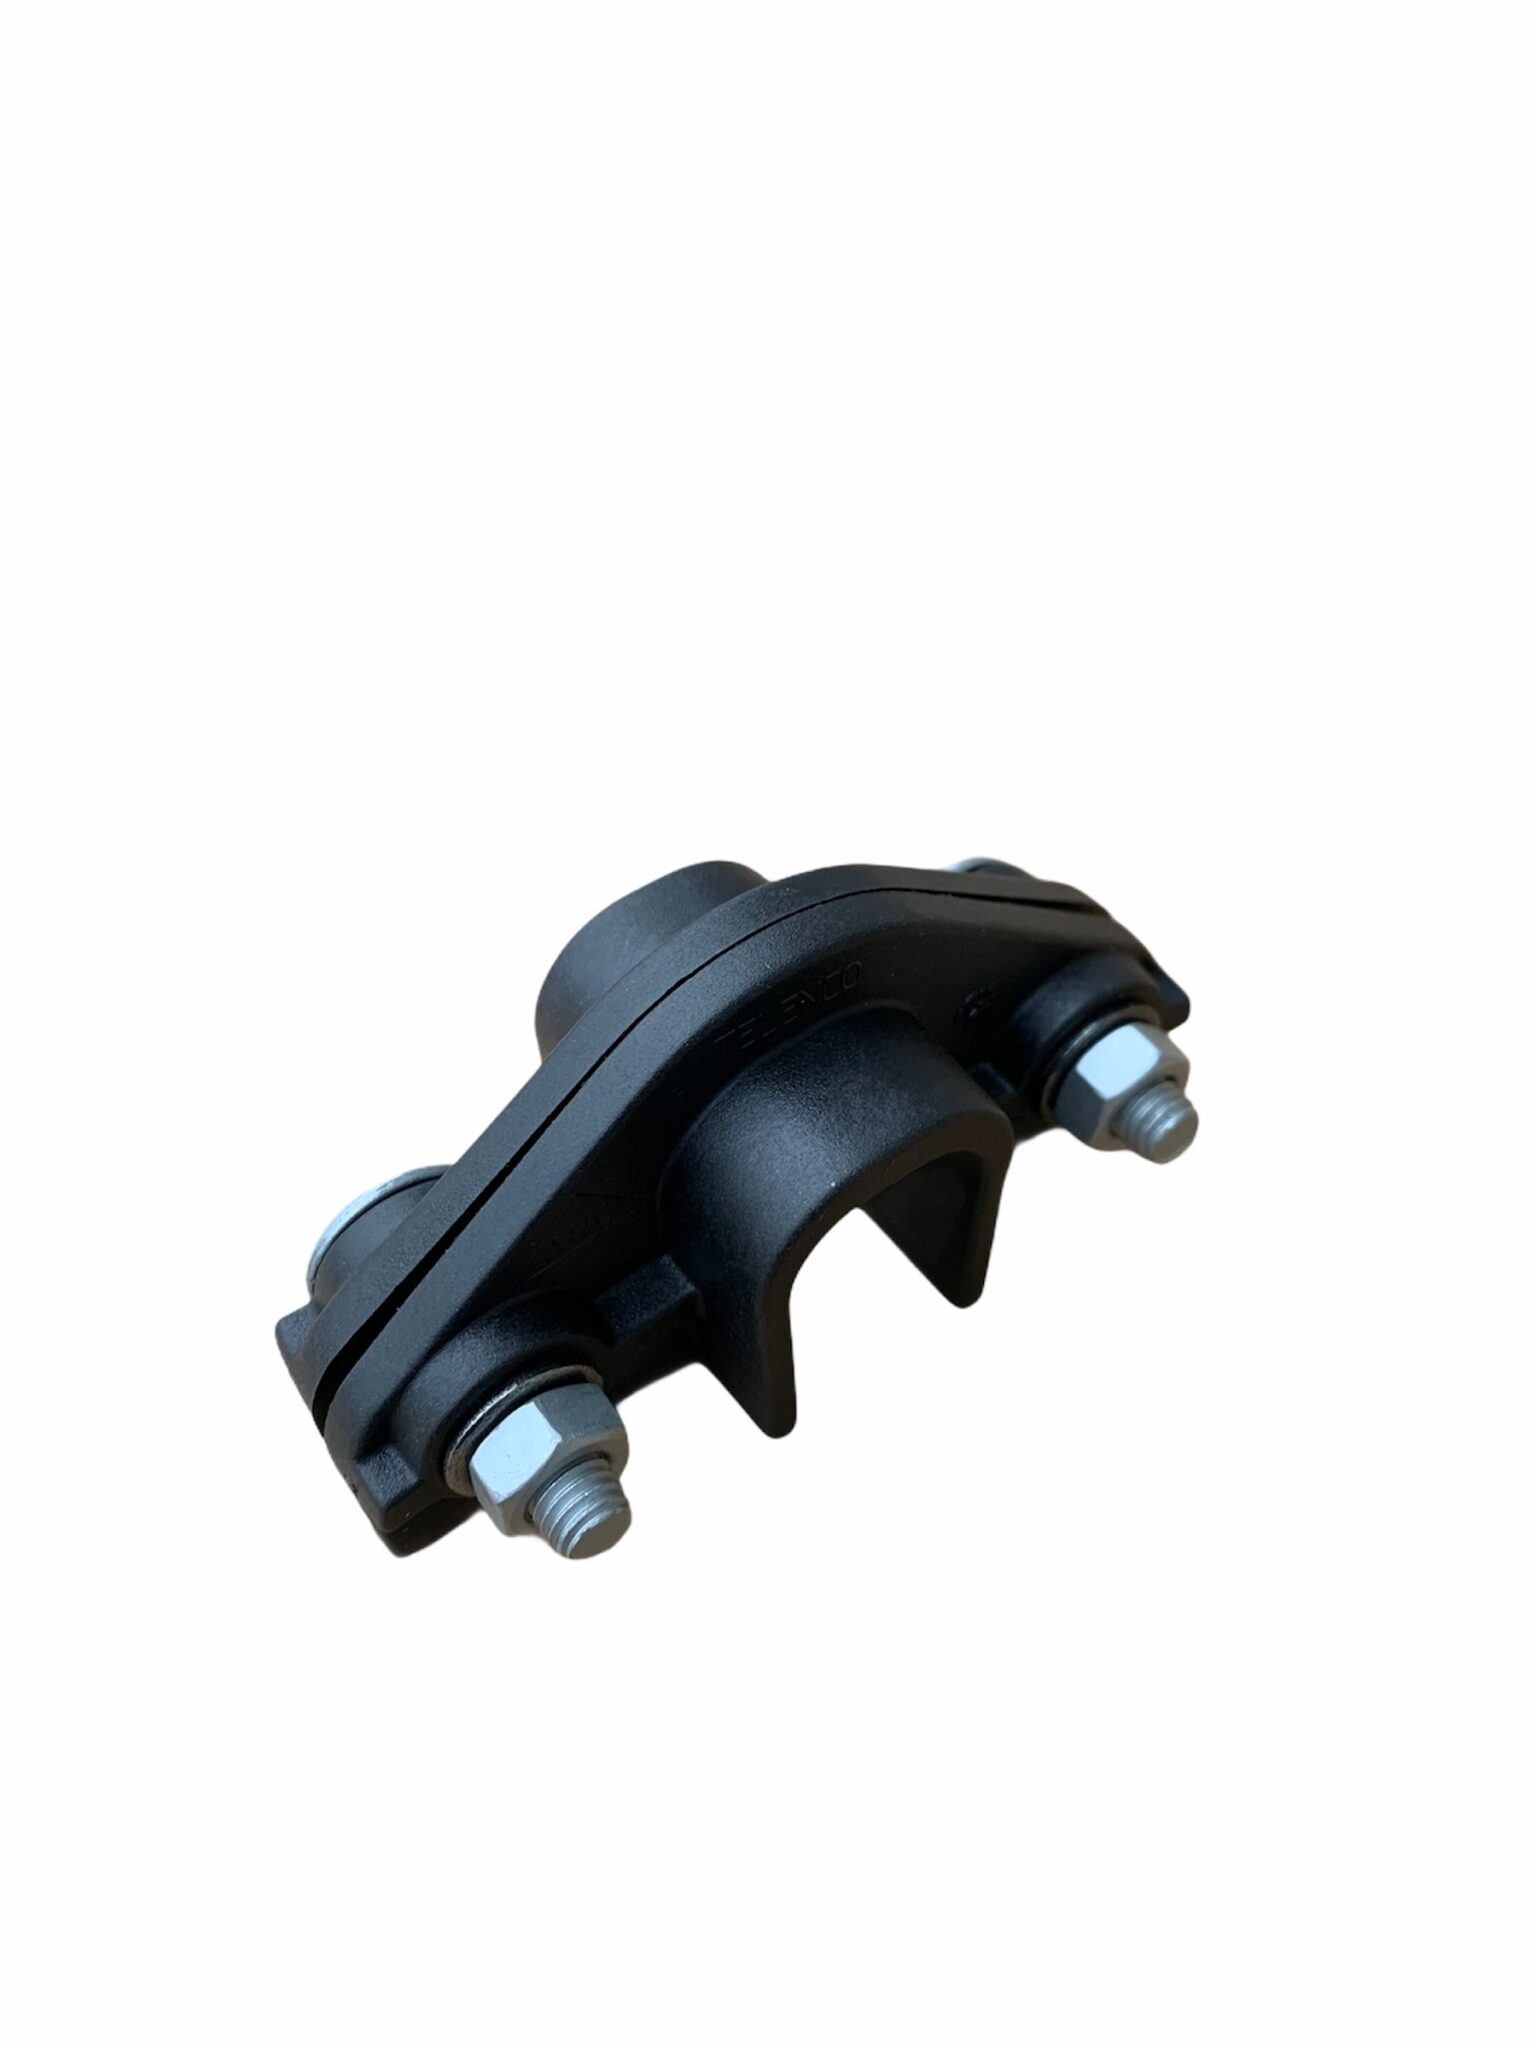 ARC 6 to 9mm Aerial Cable Relief Clamp